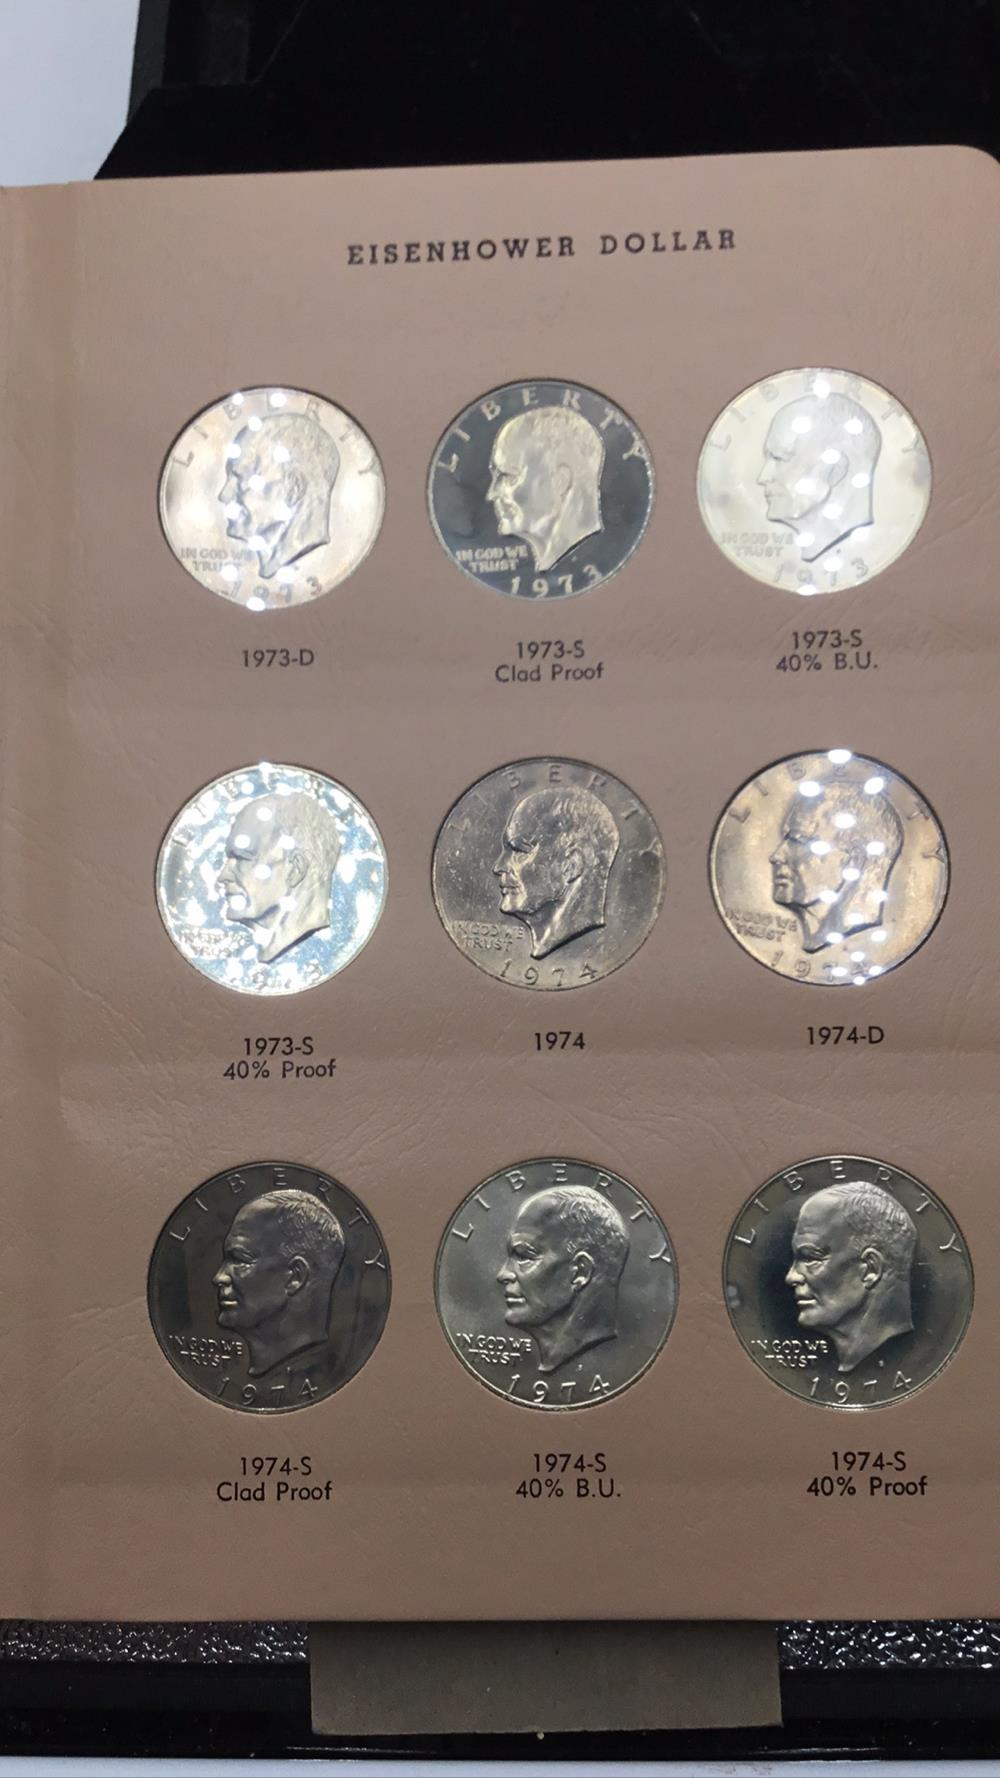 Nine Eisenhower dollars